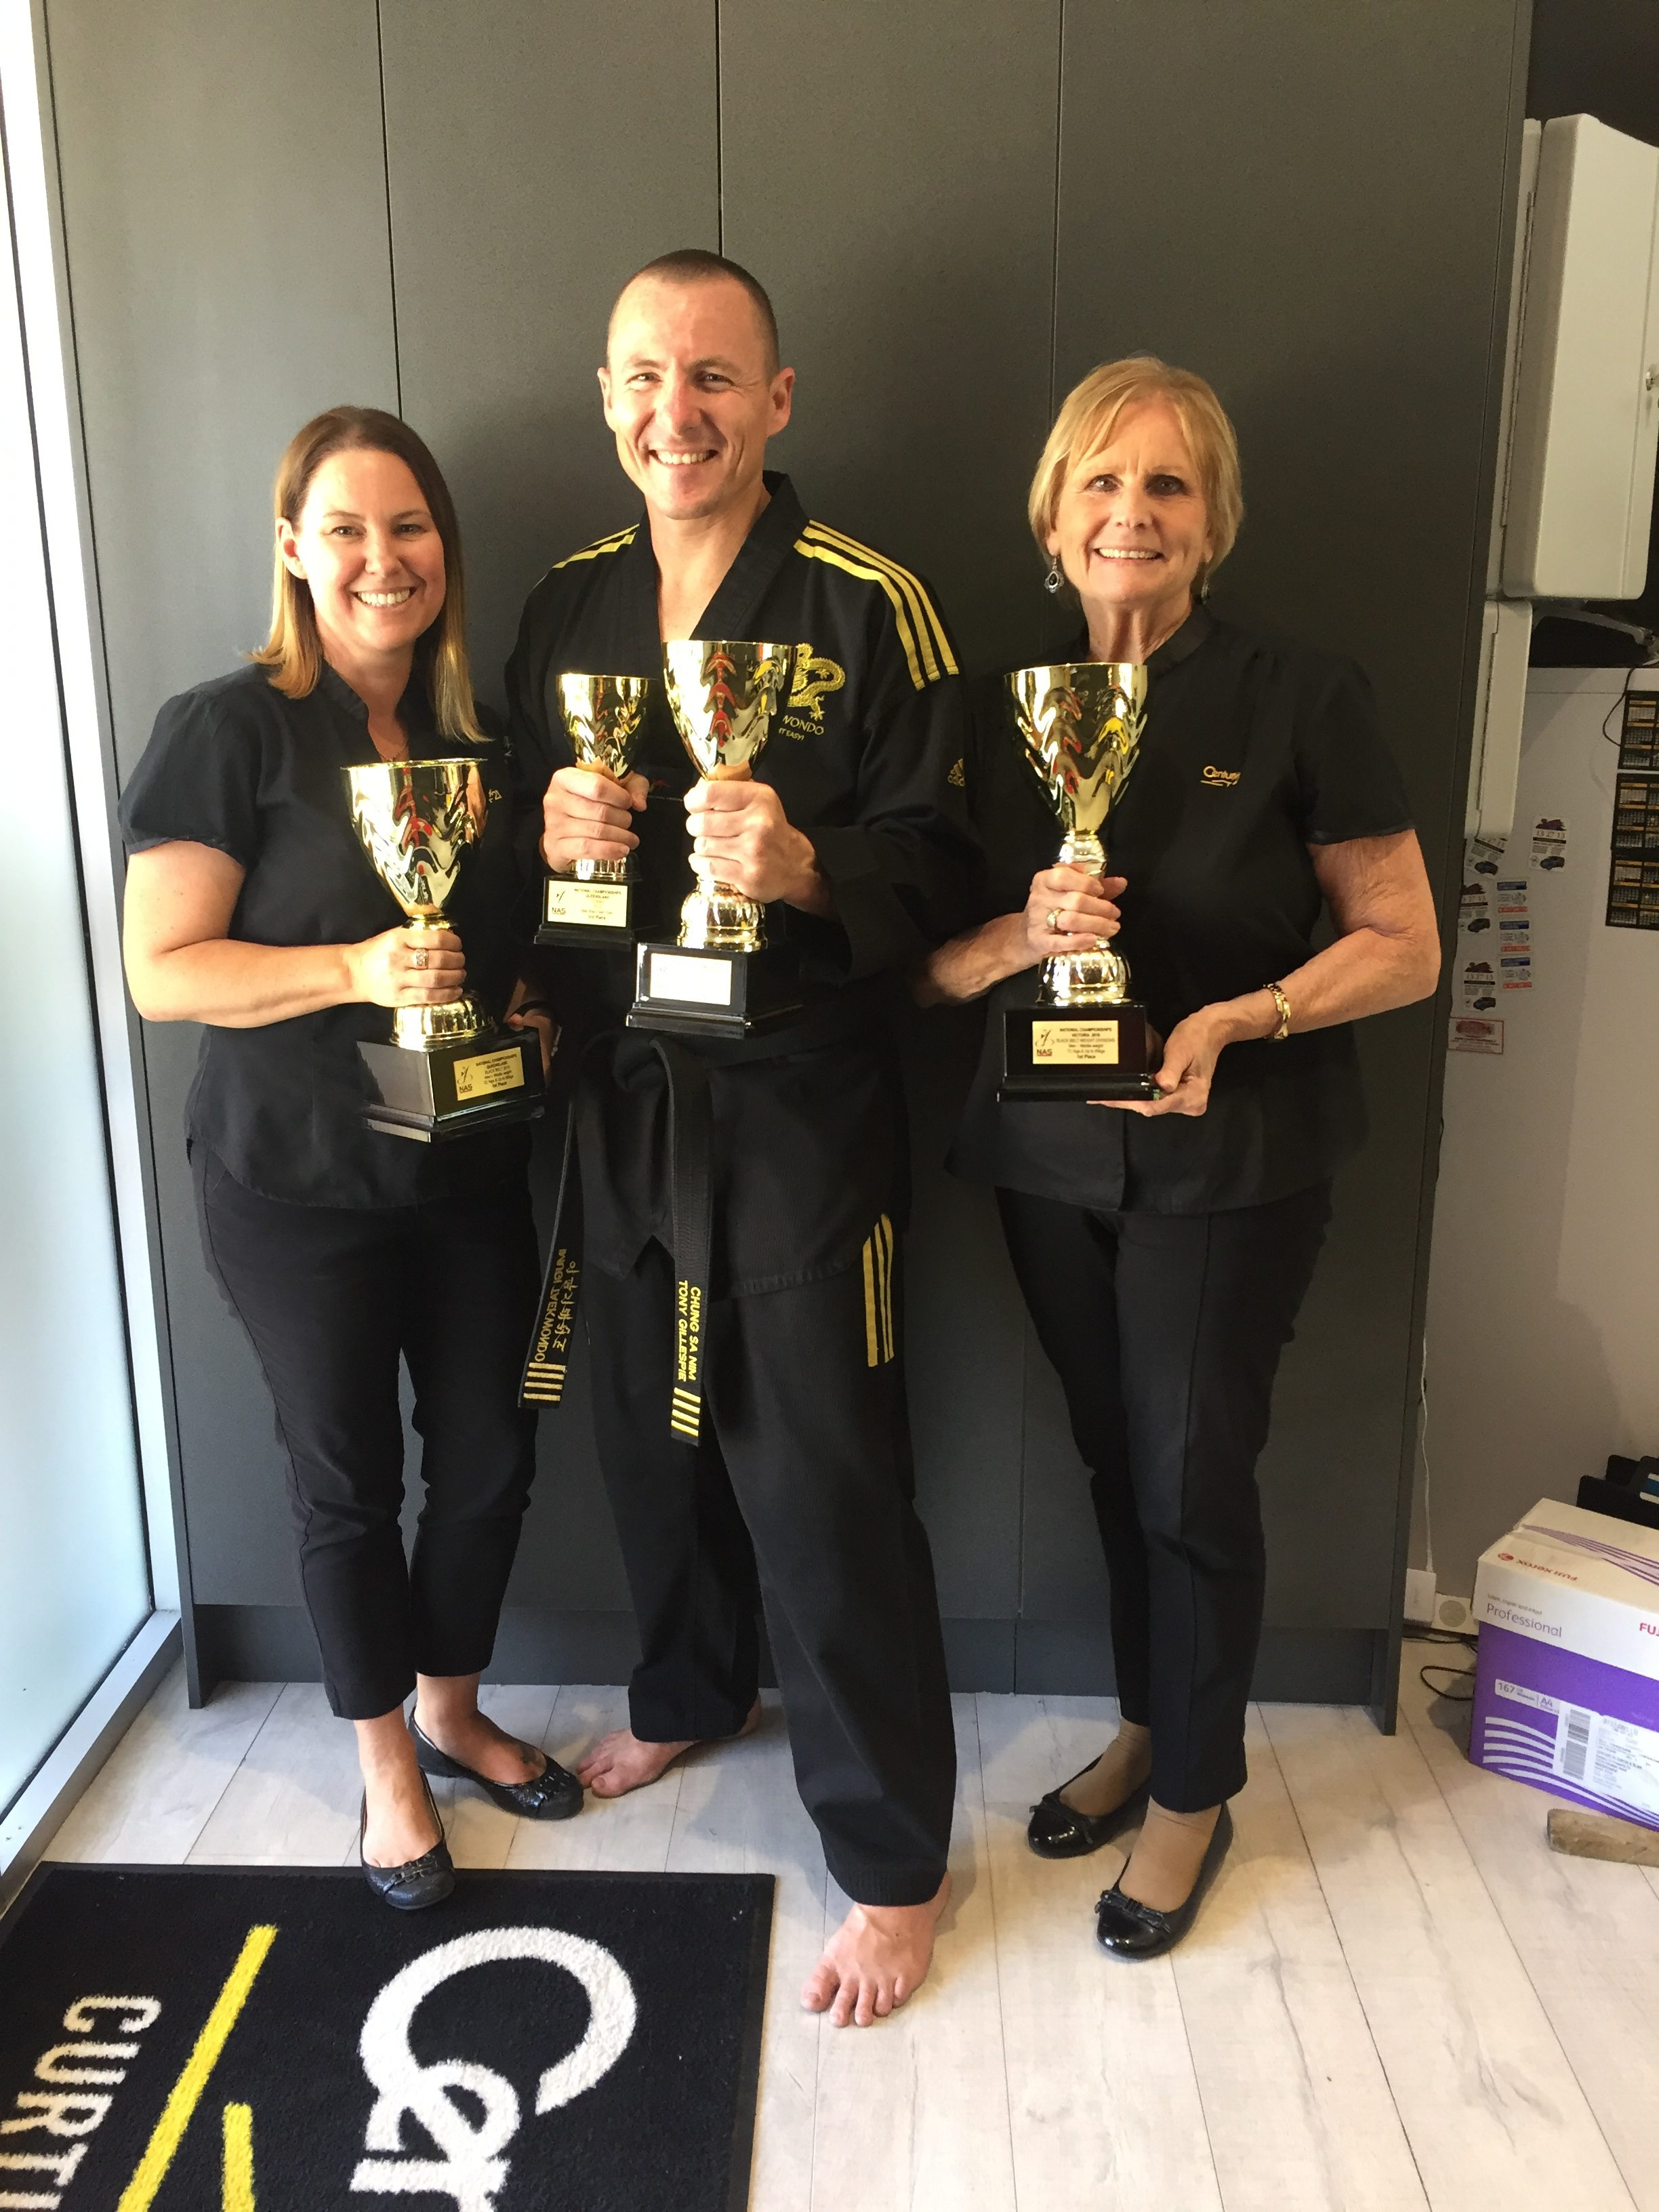 Jane Curtis, Tony Gillespie and Kerry O'Donnell (Century 21 Curtis & Blair - Major Sponsor of Imugi TKD).